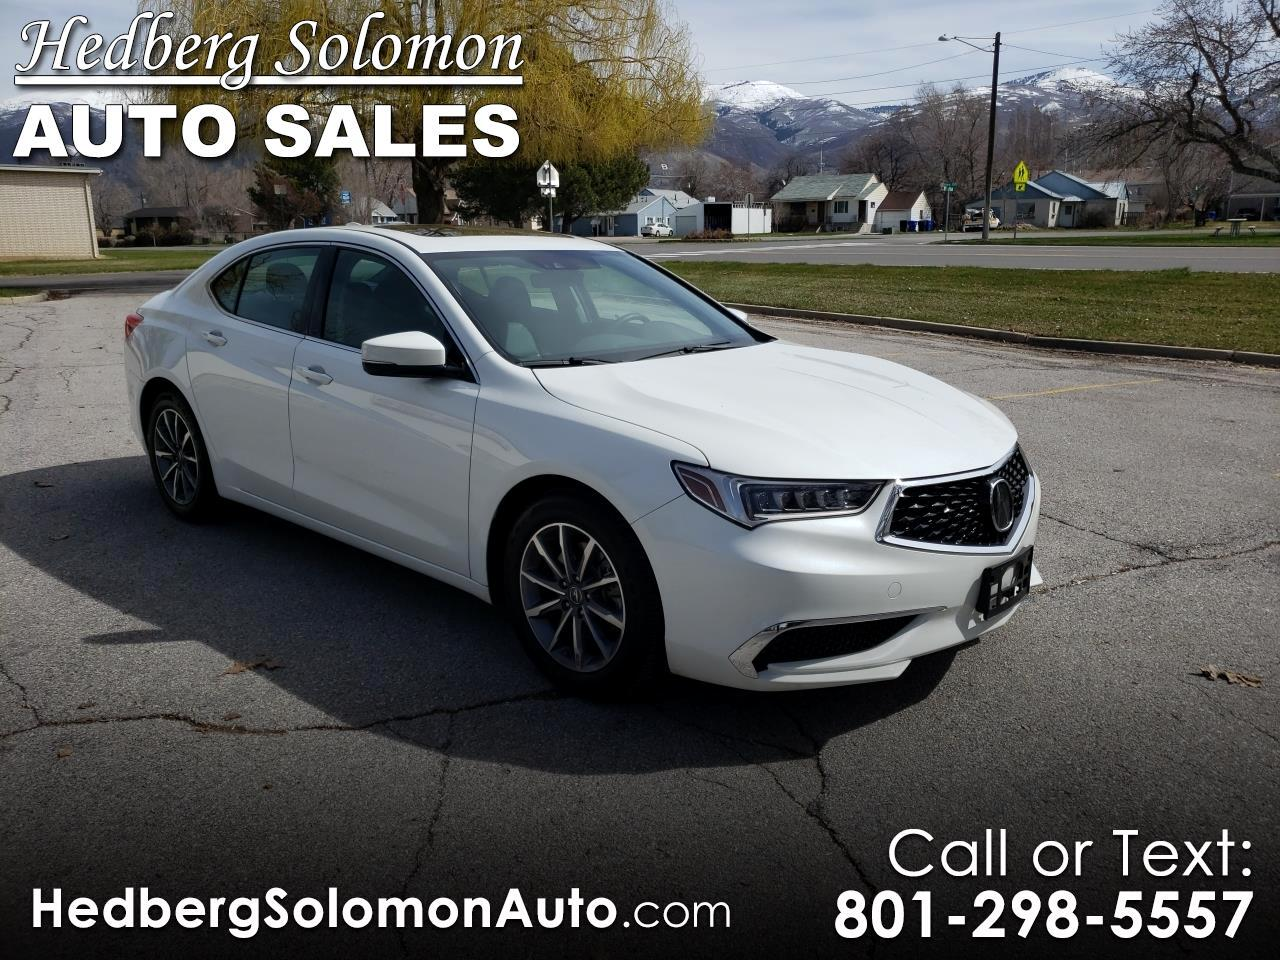 2018 Acura TLX 2.4L FWD w/Technology Pkg